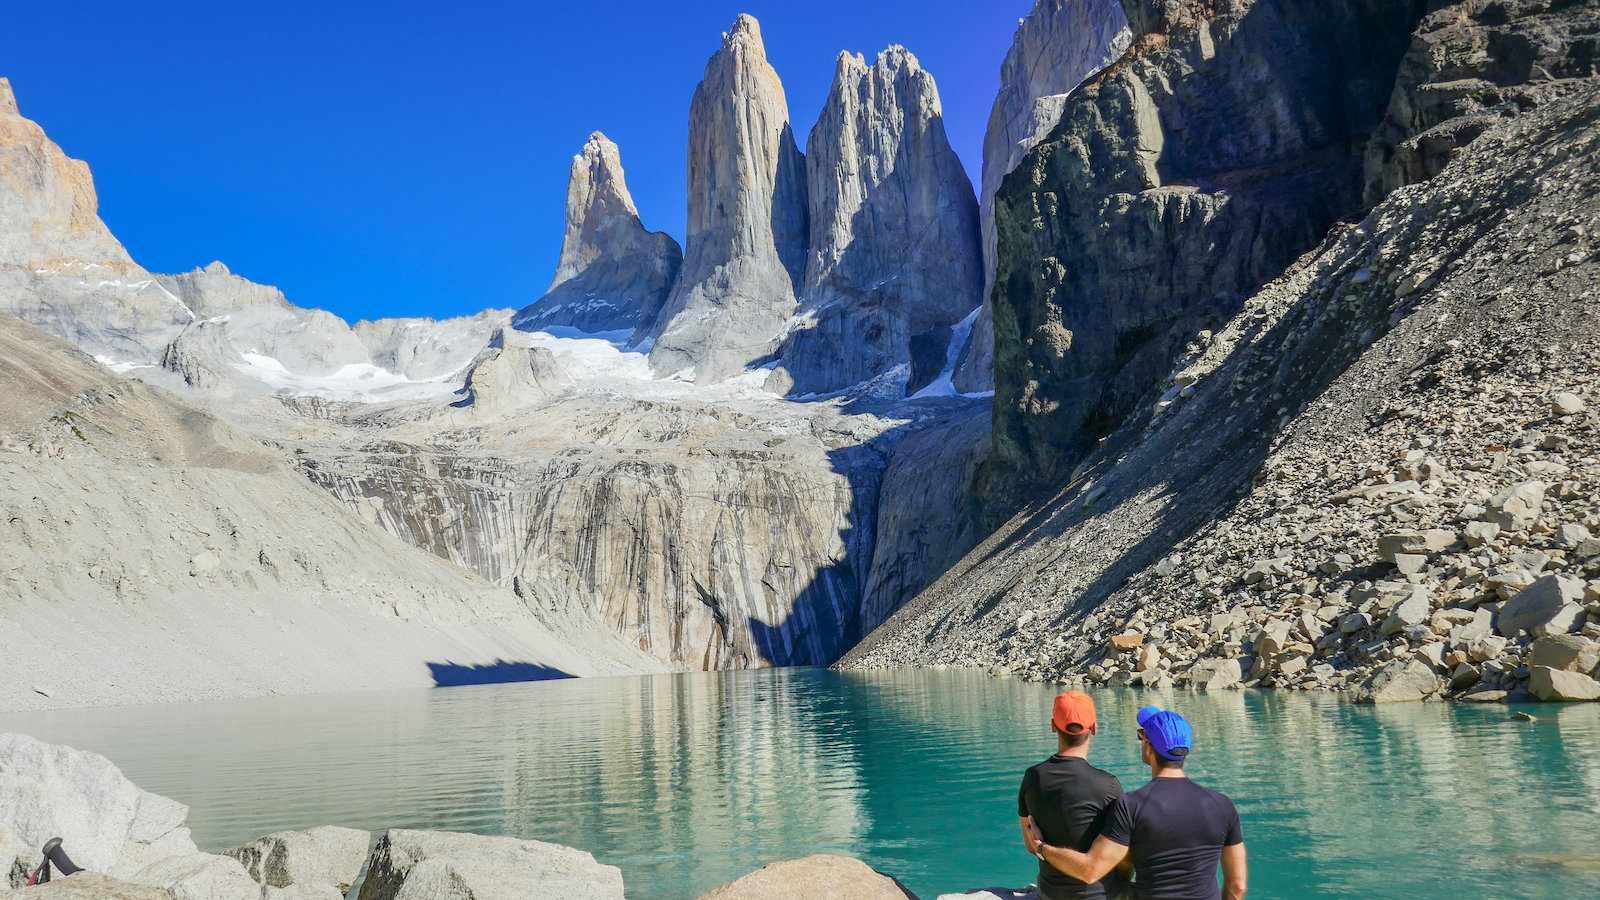 Torres del Paine are three peaks of the Paine mountain range - a highlight of visiting Patagonia